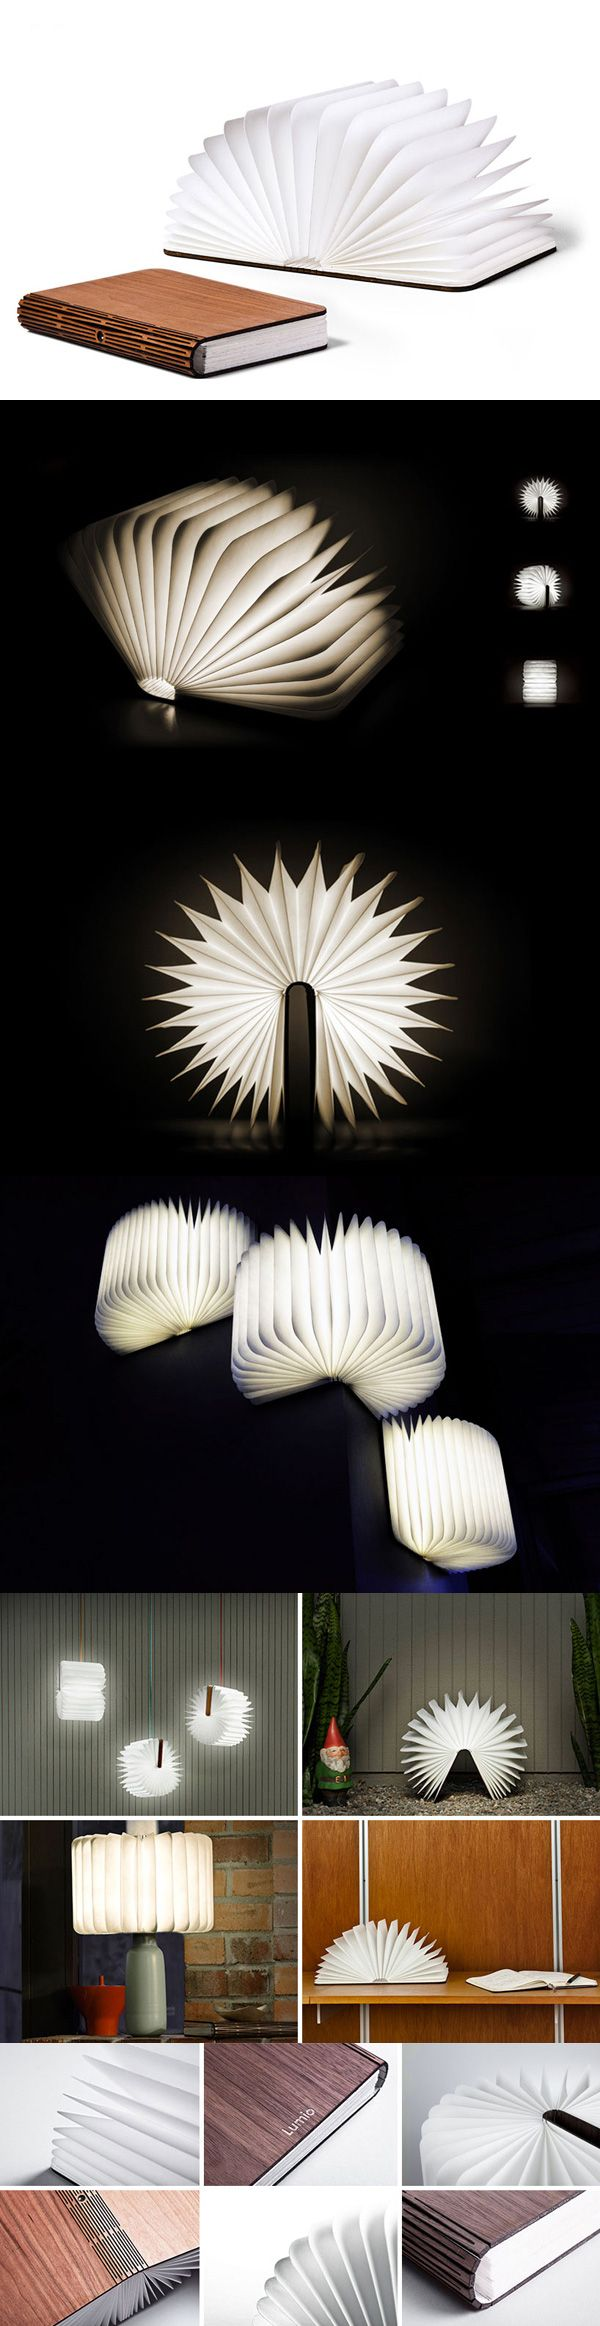 LUMIO | ILLUMINATED BOOK